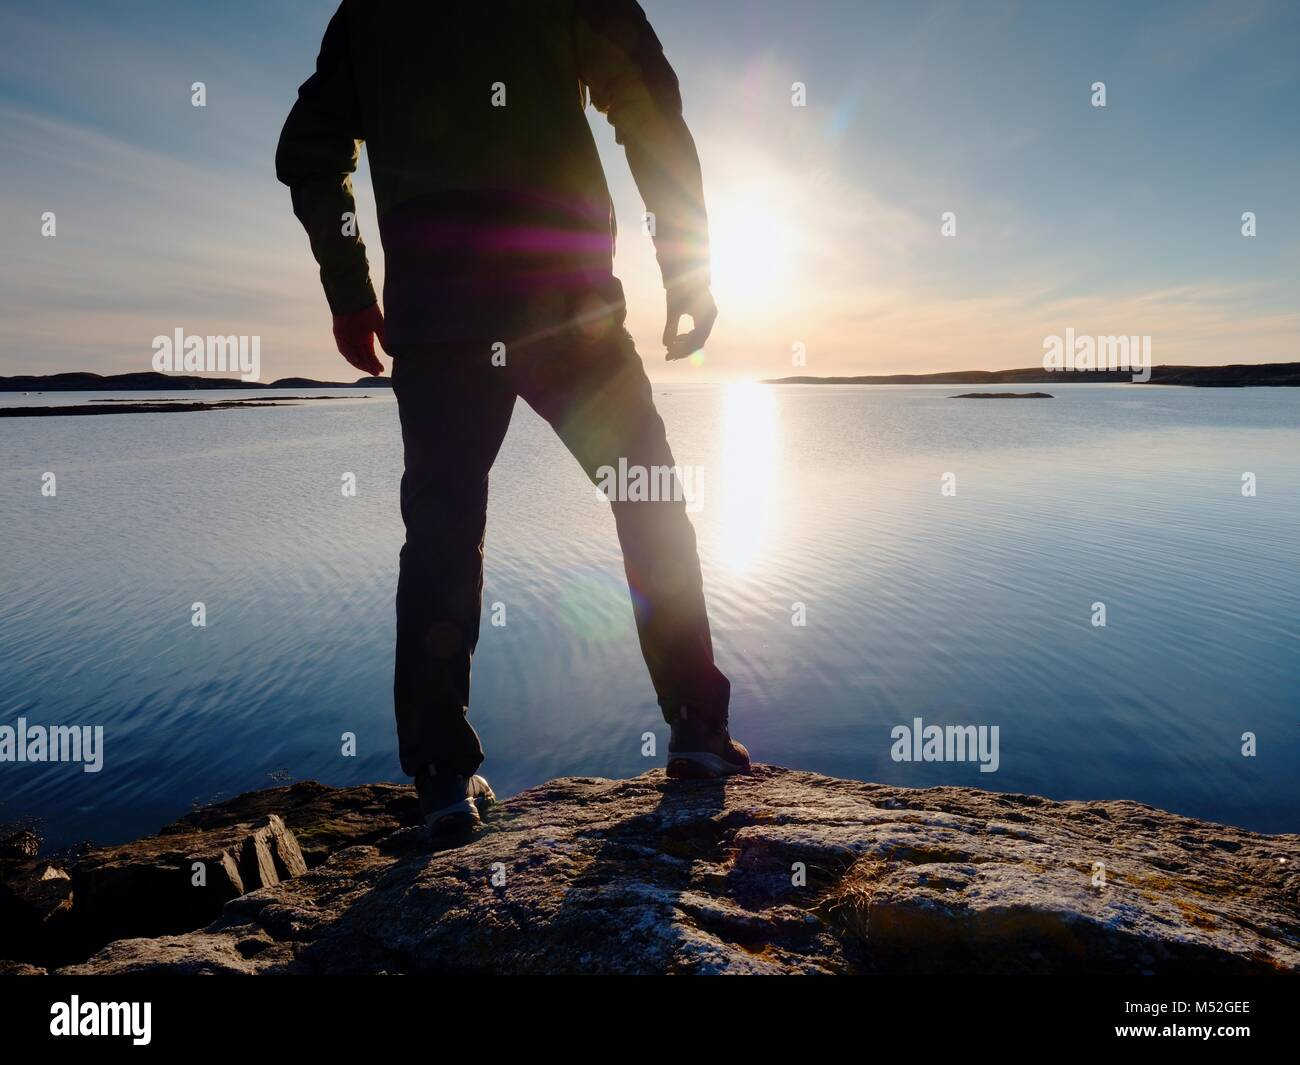 Silhouette of man in outdoor clothes on rocky cliff above sea. Hikerthinking  during sunset in the background. Traveling - Stock Image